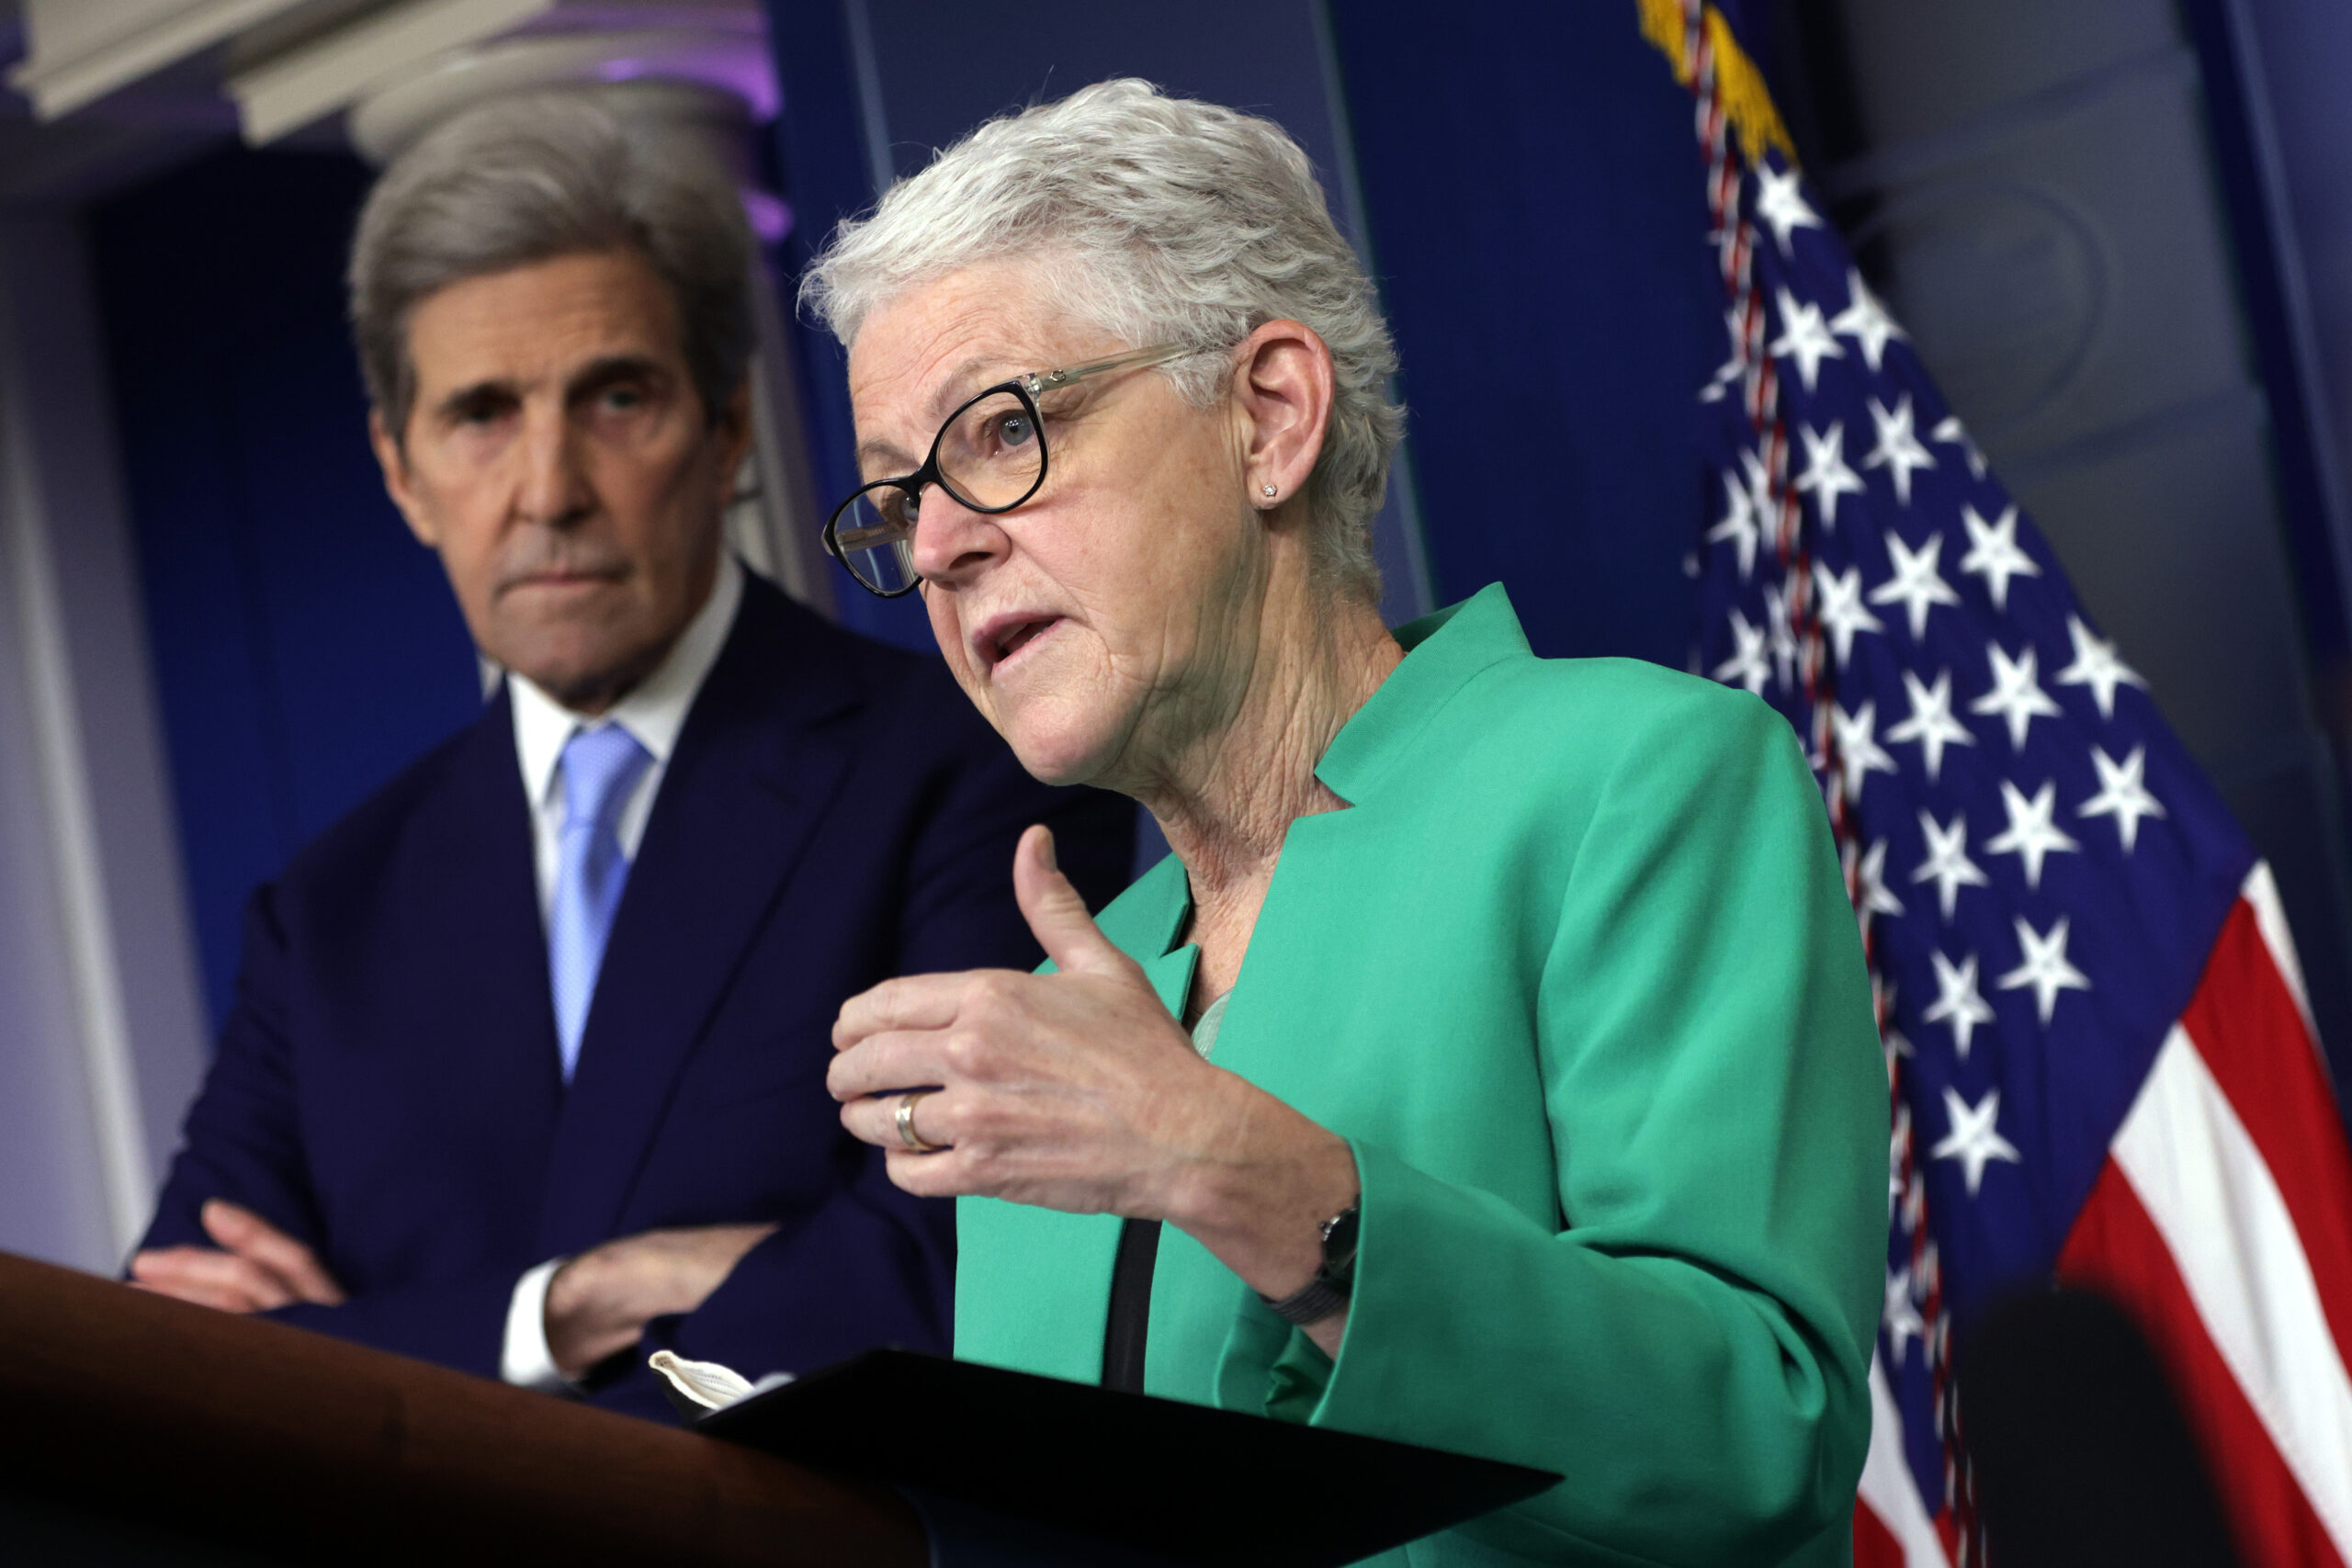 National Climate Adviser Gina McCarthy speaks as Special Presidential Envoy for Climate and former Secretary of State John Kerry listens during a daily press briefing at the James Brady Press Briefing Room of the White House on April 22, 2021 in Washington, DC. Credit: Alex Wong/Getty Images